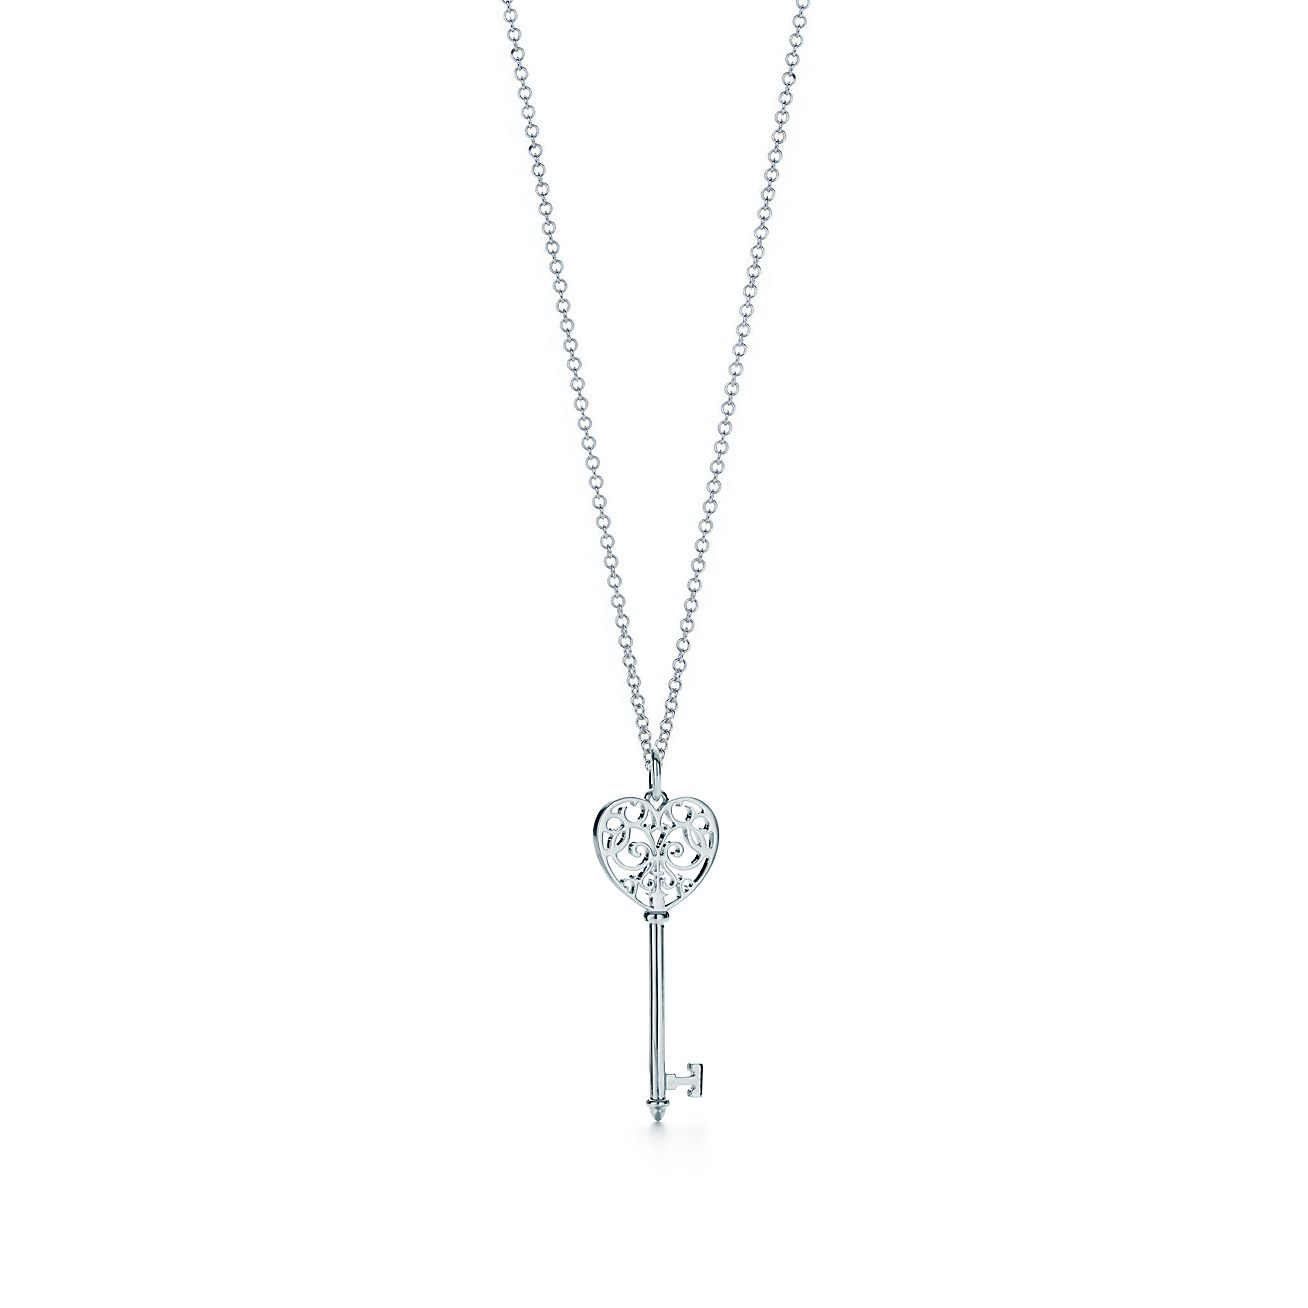 Tiffany keys enchant heart key pendant in sterling silver medium tiffany keysenchant heart key pendant mozeypictures Image collections